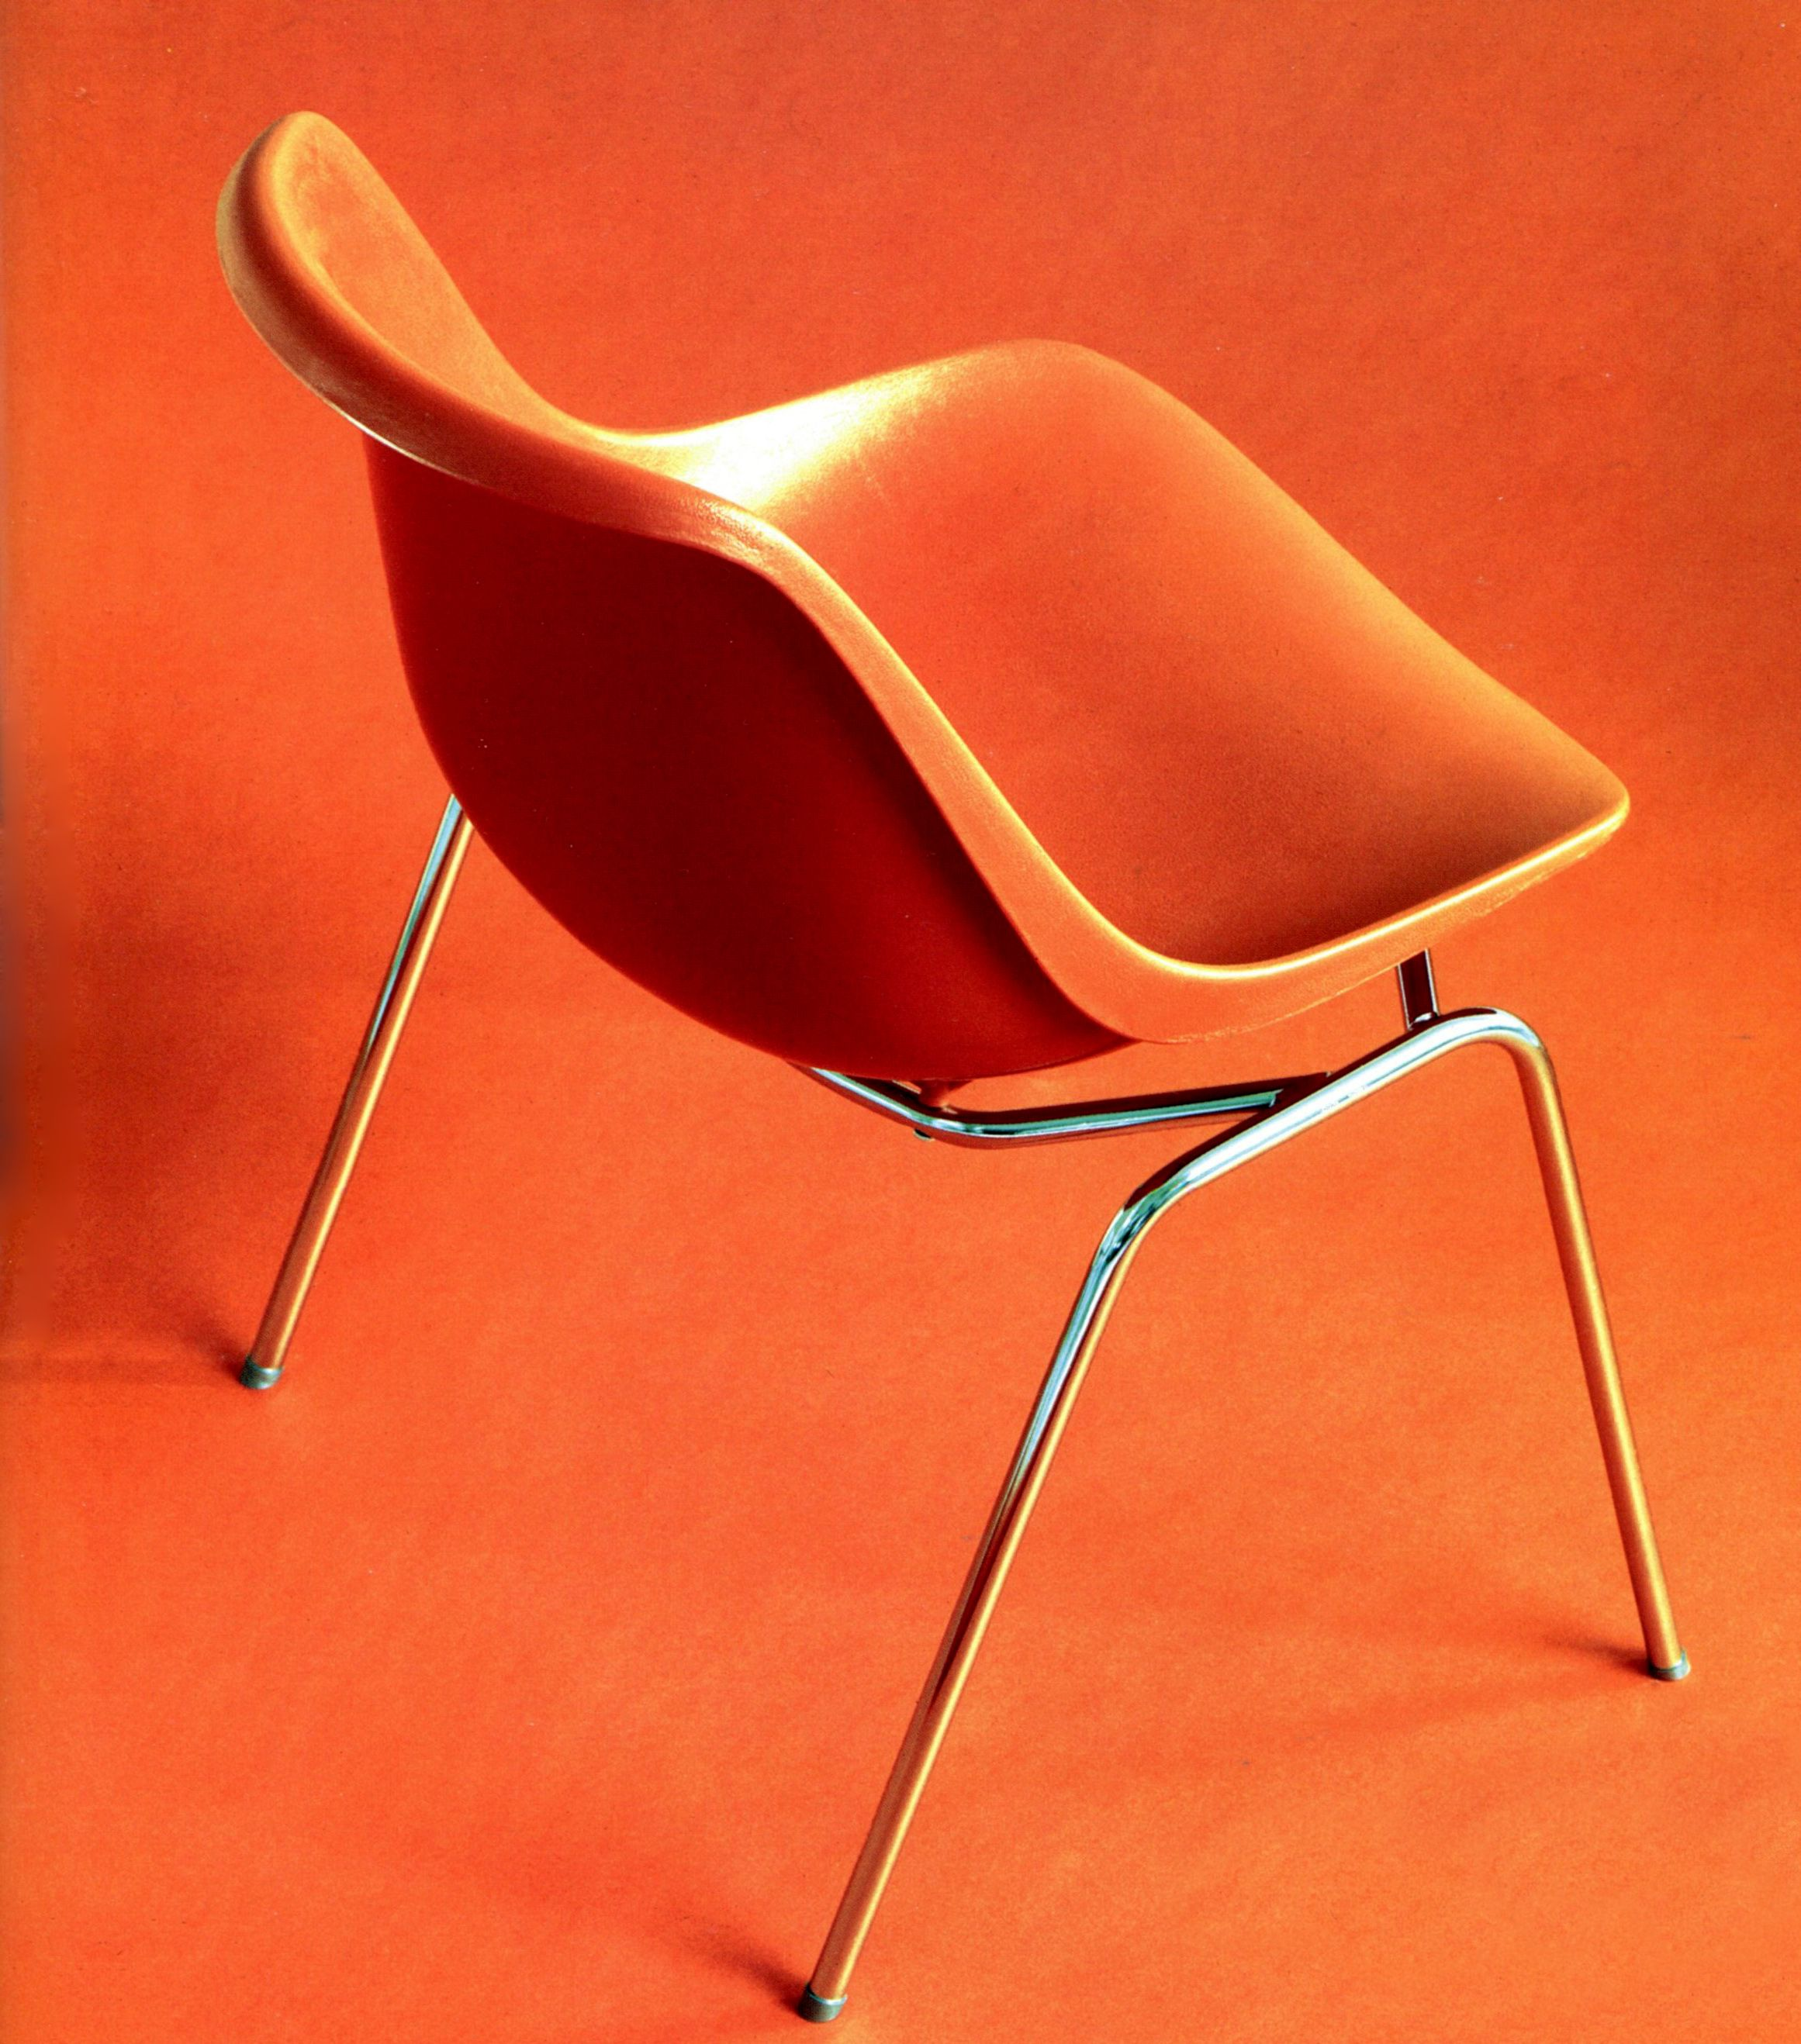 Eero aarnio 39 s polaris chair designed in 1966 for Stuhl designgeschichte